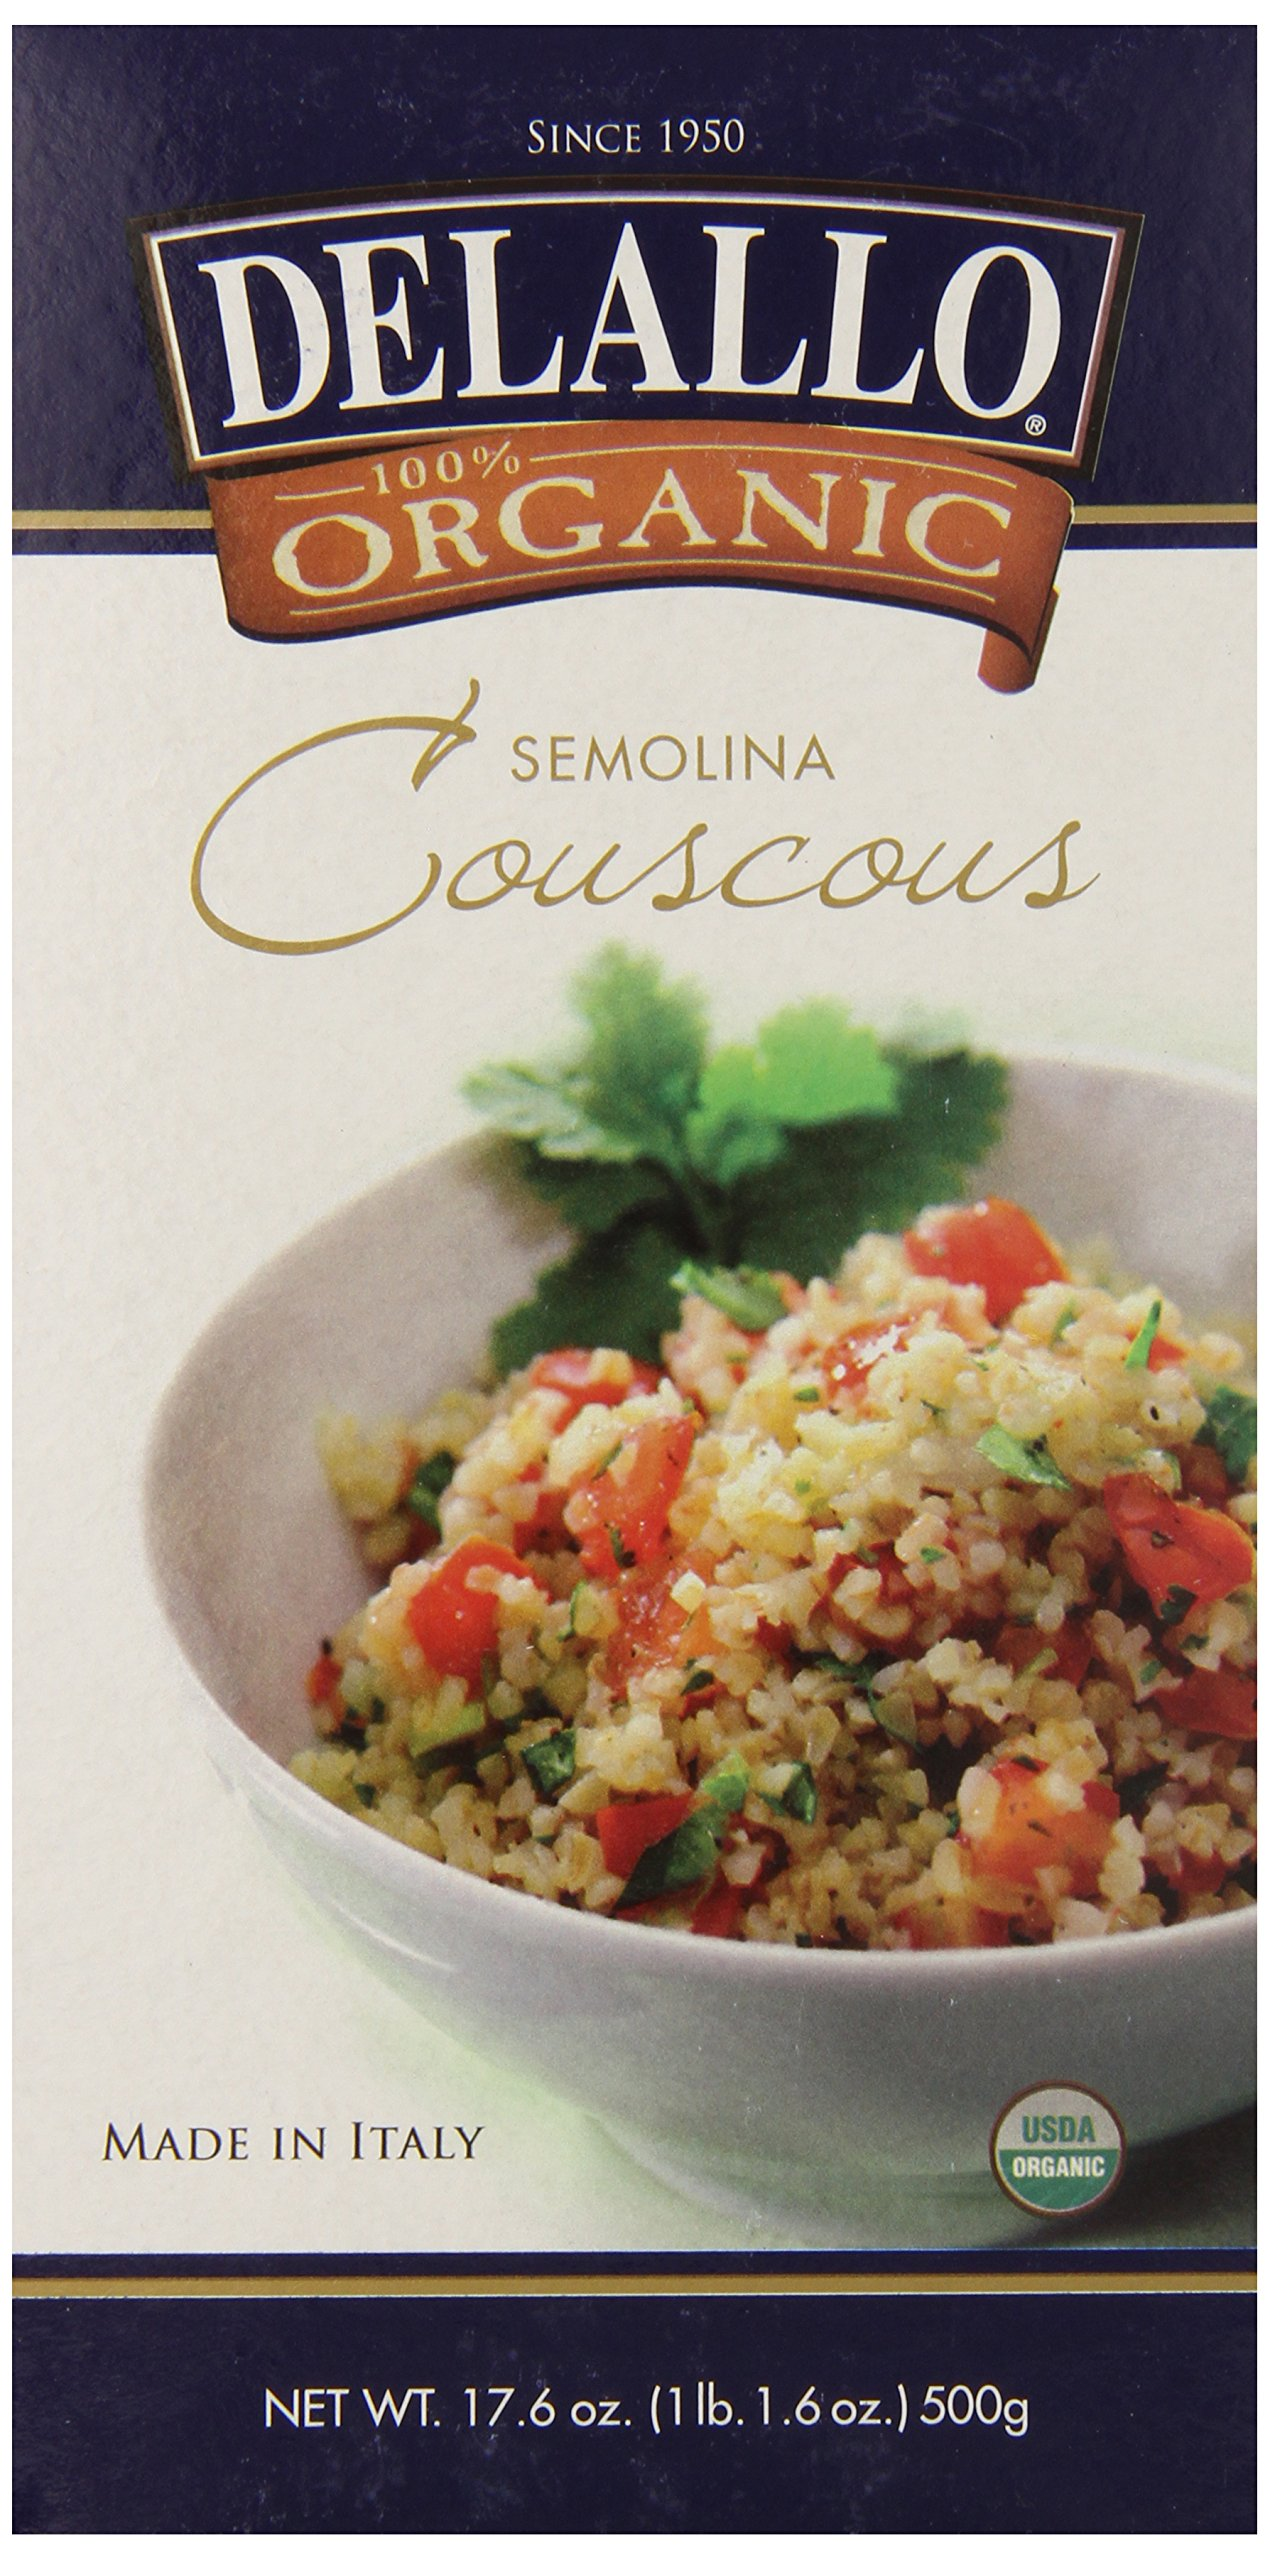 DeLallo Organic Couscous, 17.6-Ounce Unit (Pack of 6)